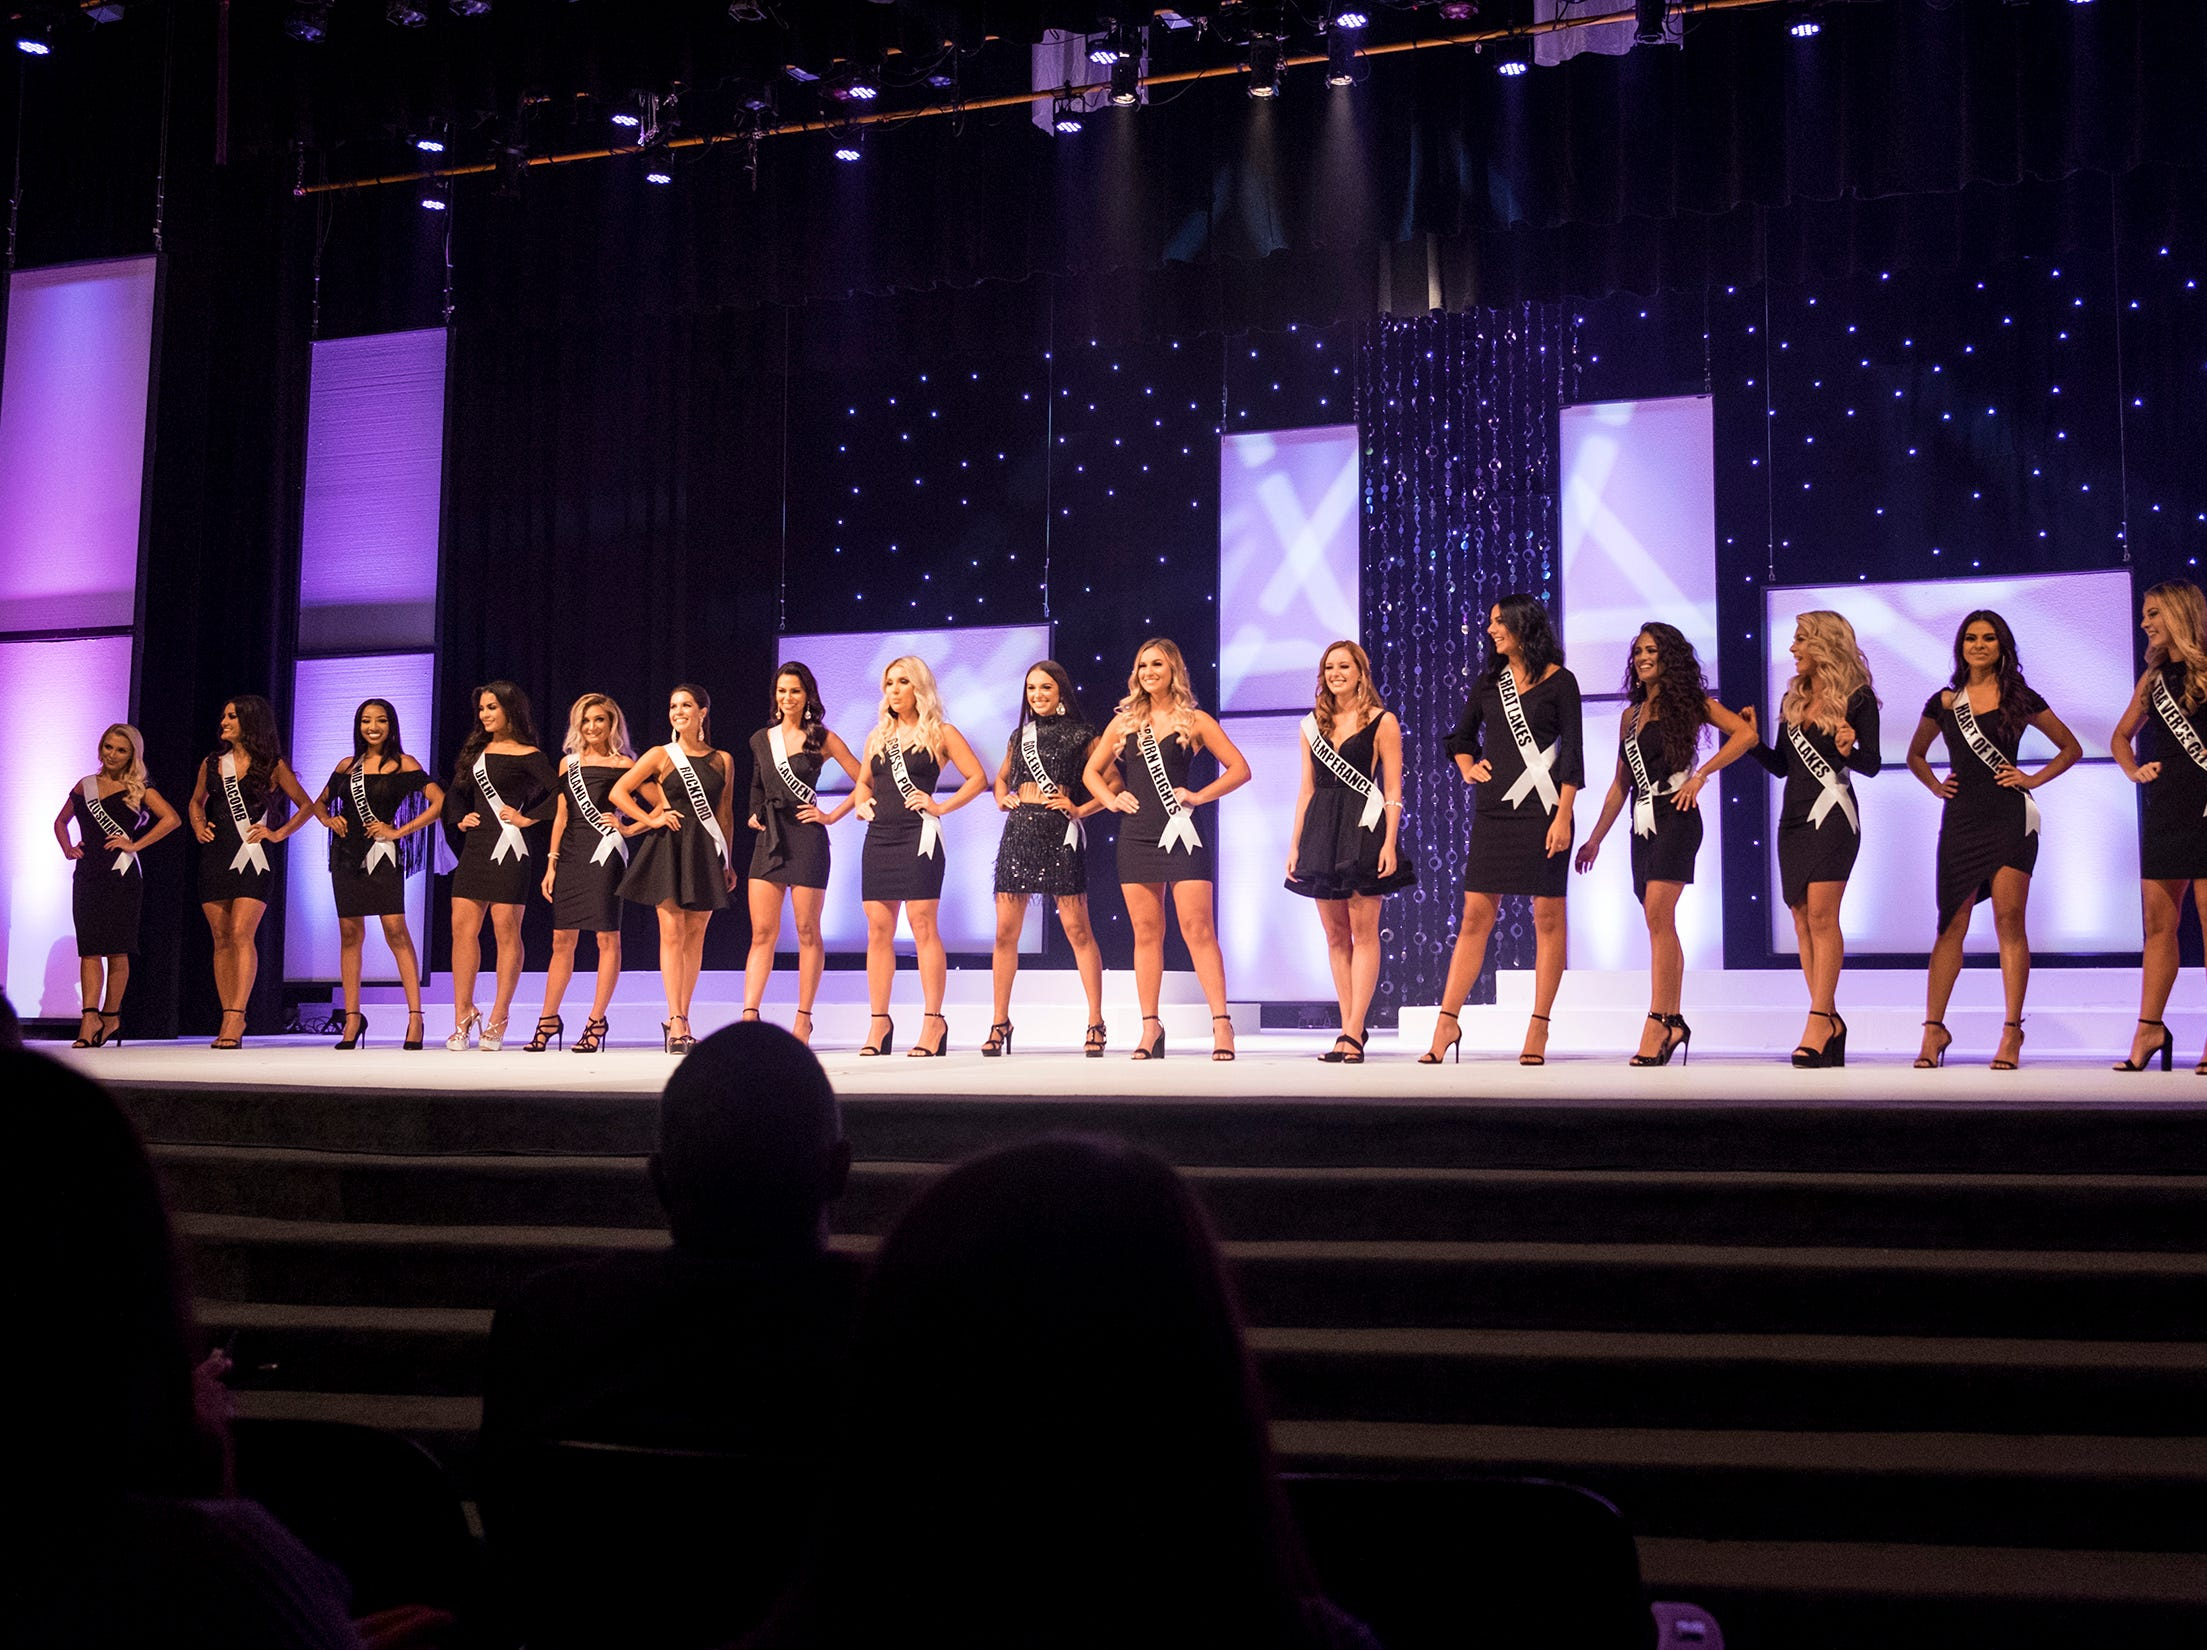 The 16 semifinalists in the Miss Michigan USA pageant line the stage Saturday, Sept. 22, 2018 at McMorran Theater.